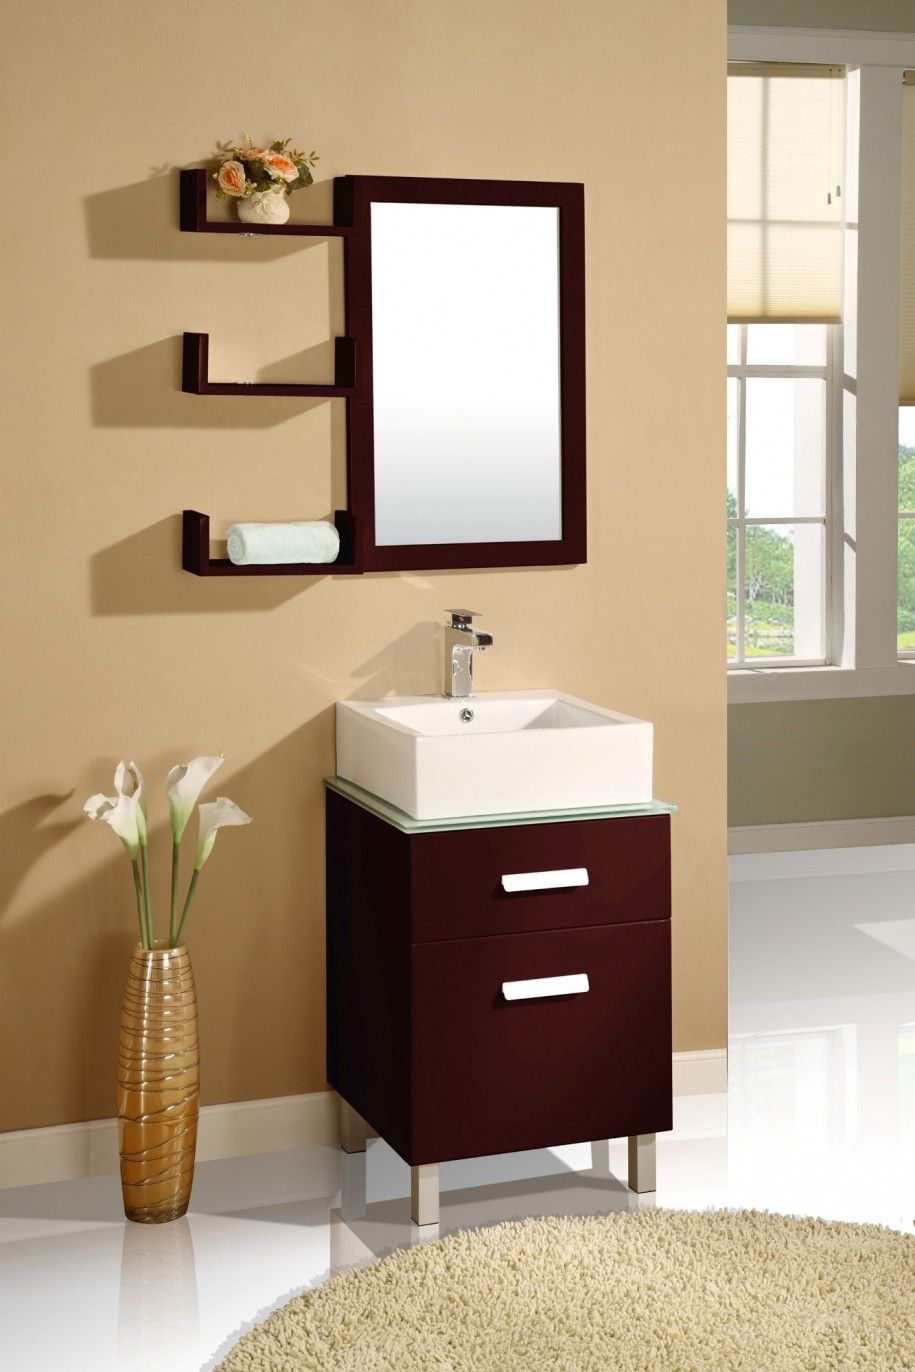 Simple Dark Wood Bathroom Mirrors With Shelves And Small Vanity Cabinet White Wash